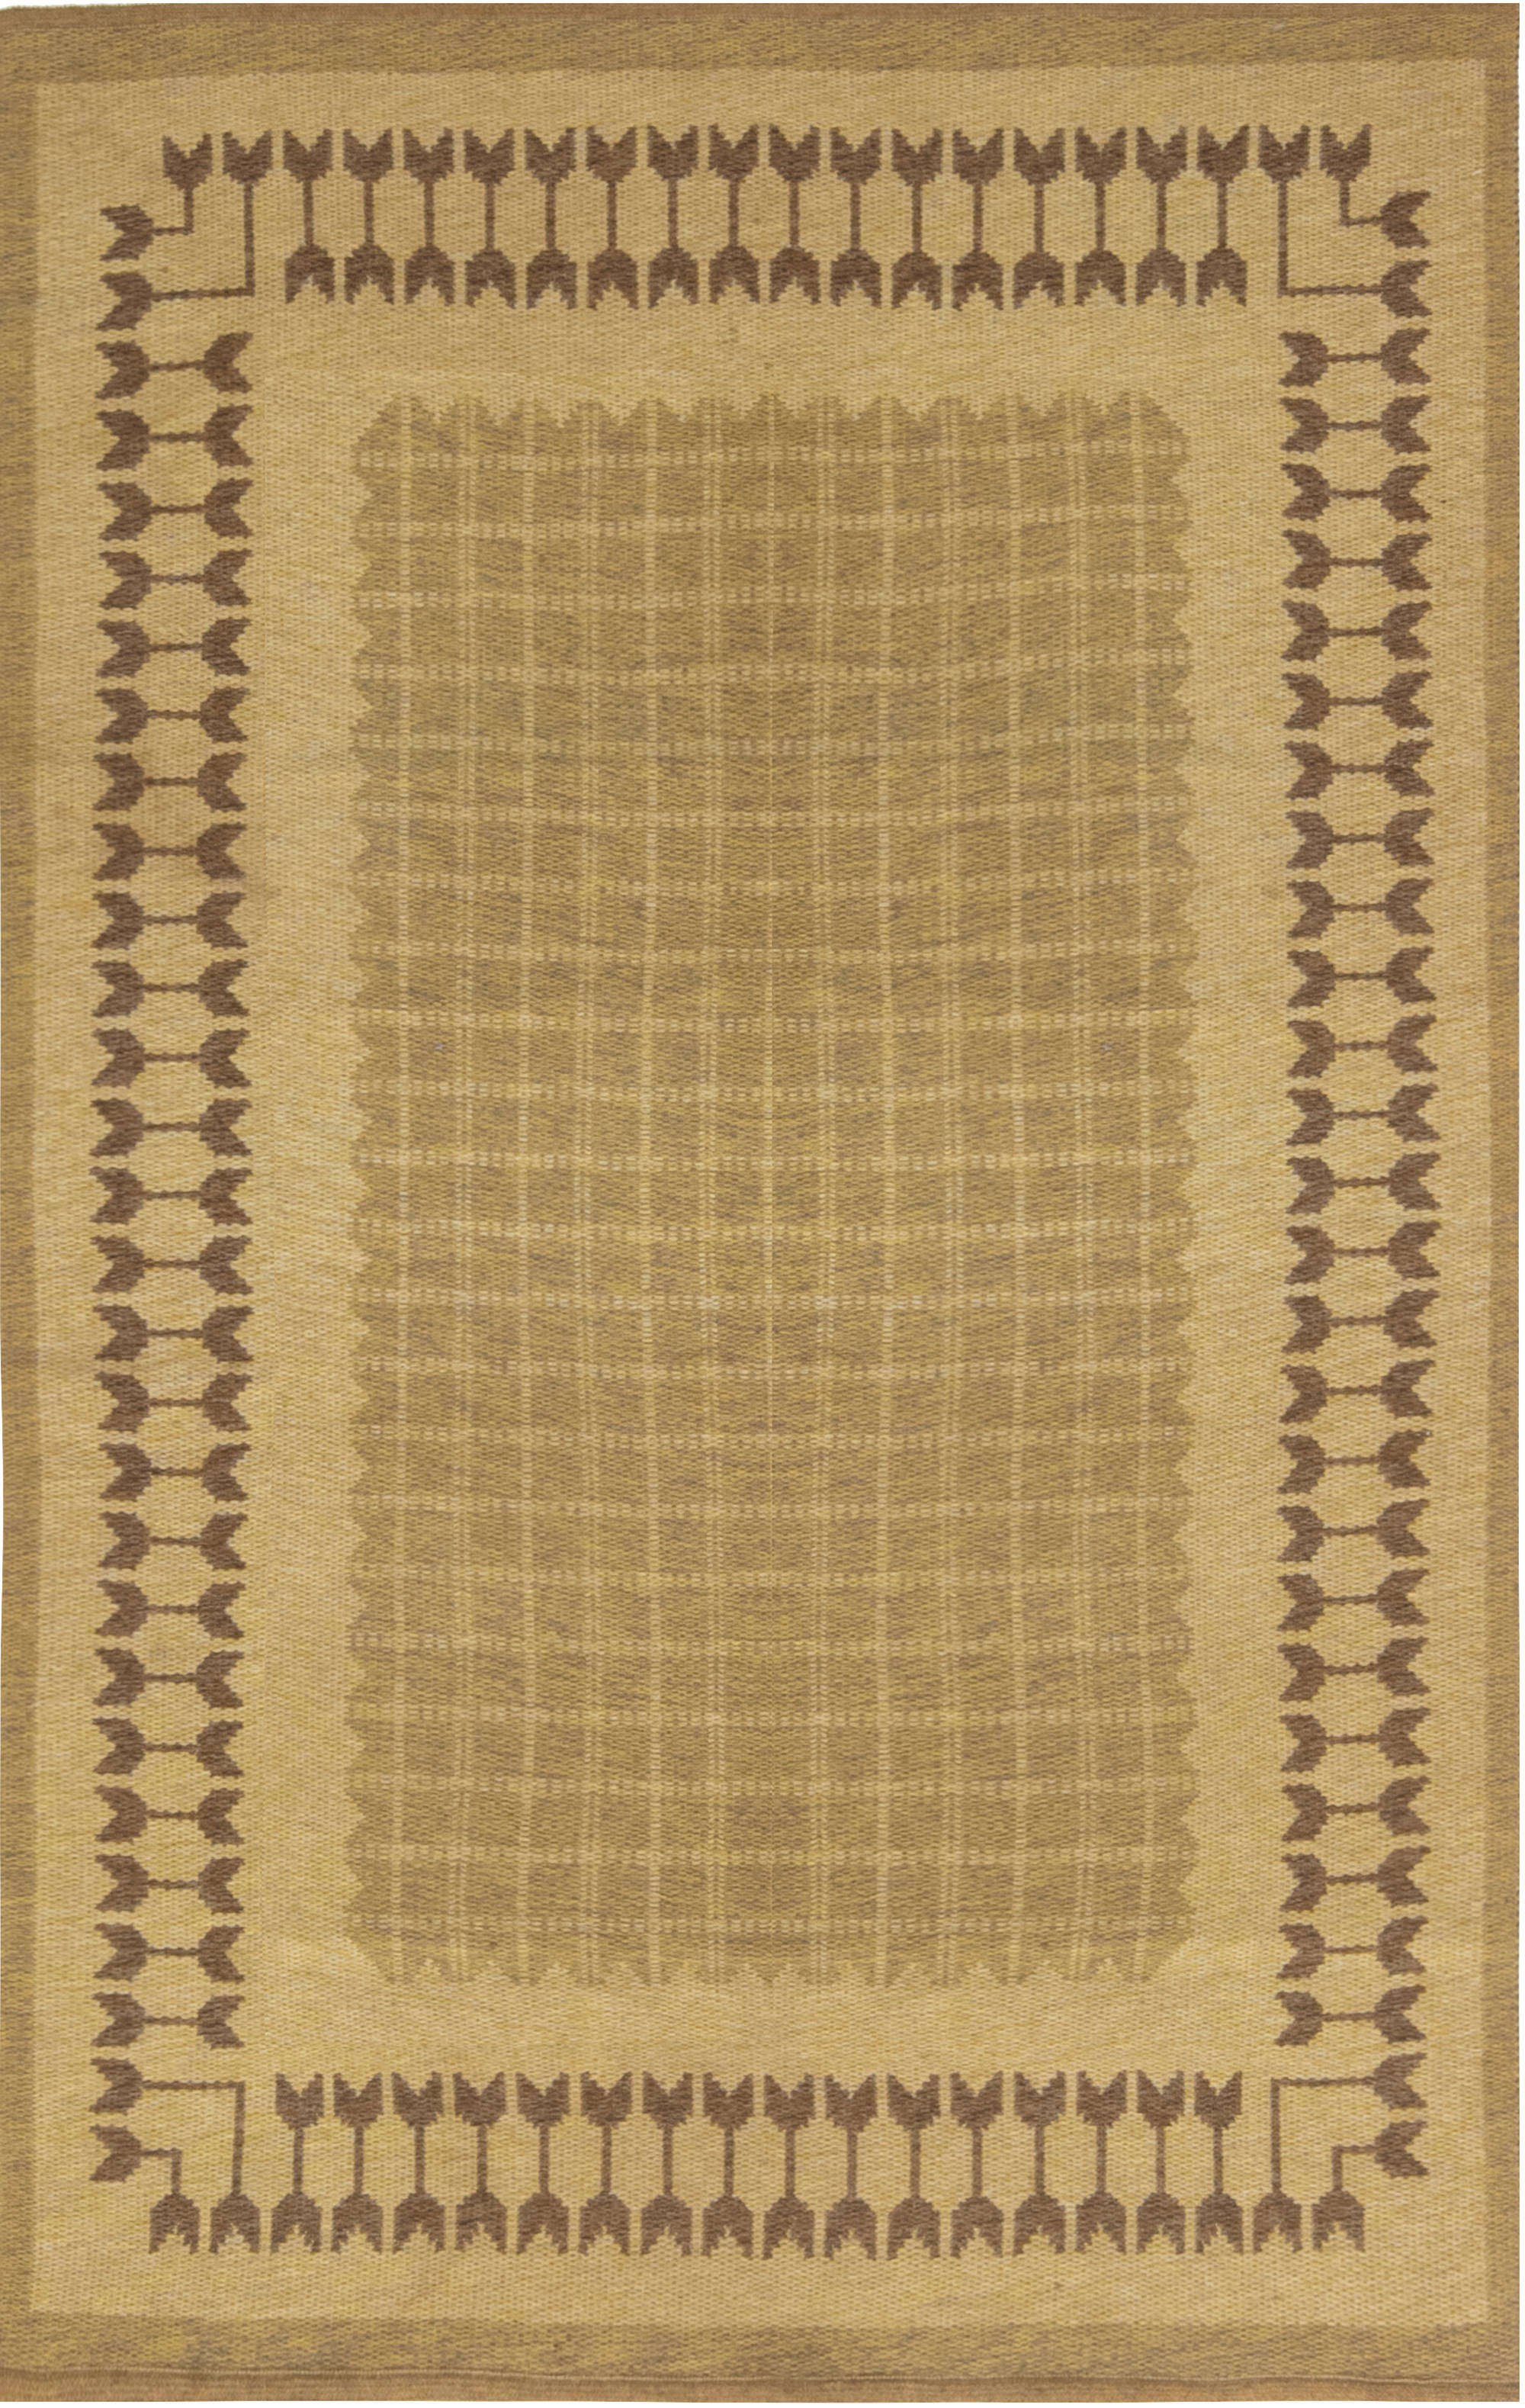 VINTAGE SWEDISH FLAT WEAVE DOUBLE SIDED RUG BB6869